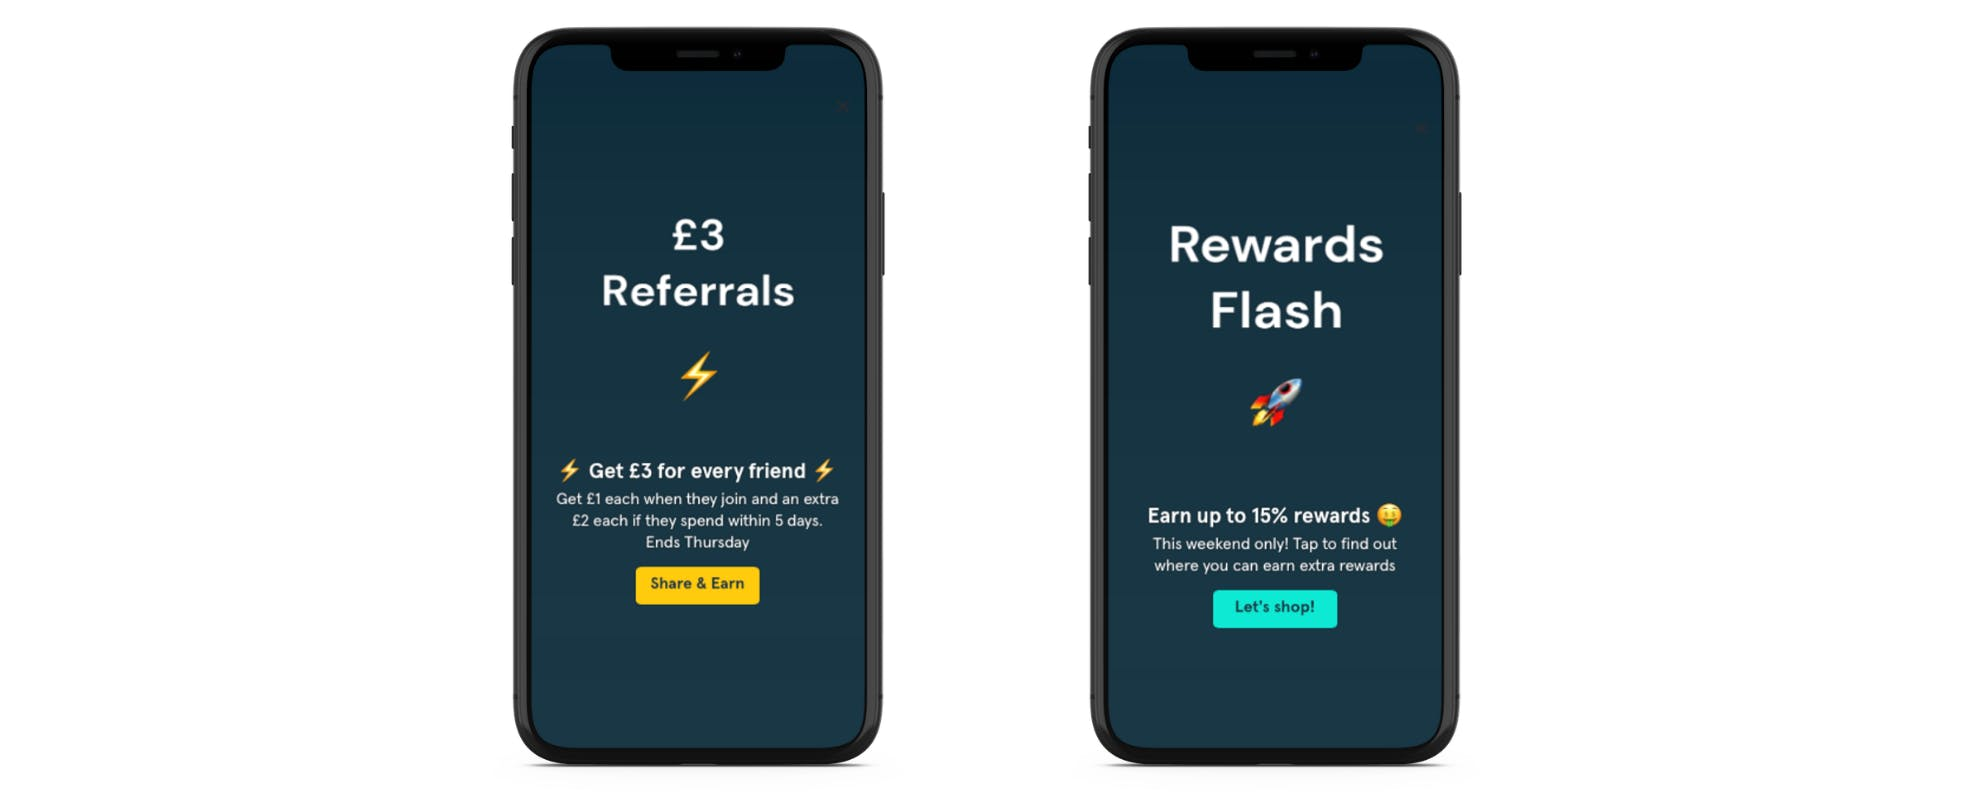 Airtime Surge and Rewards Flash